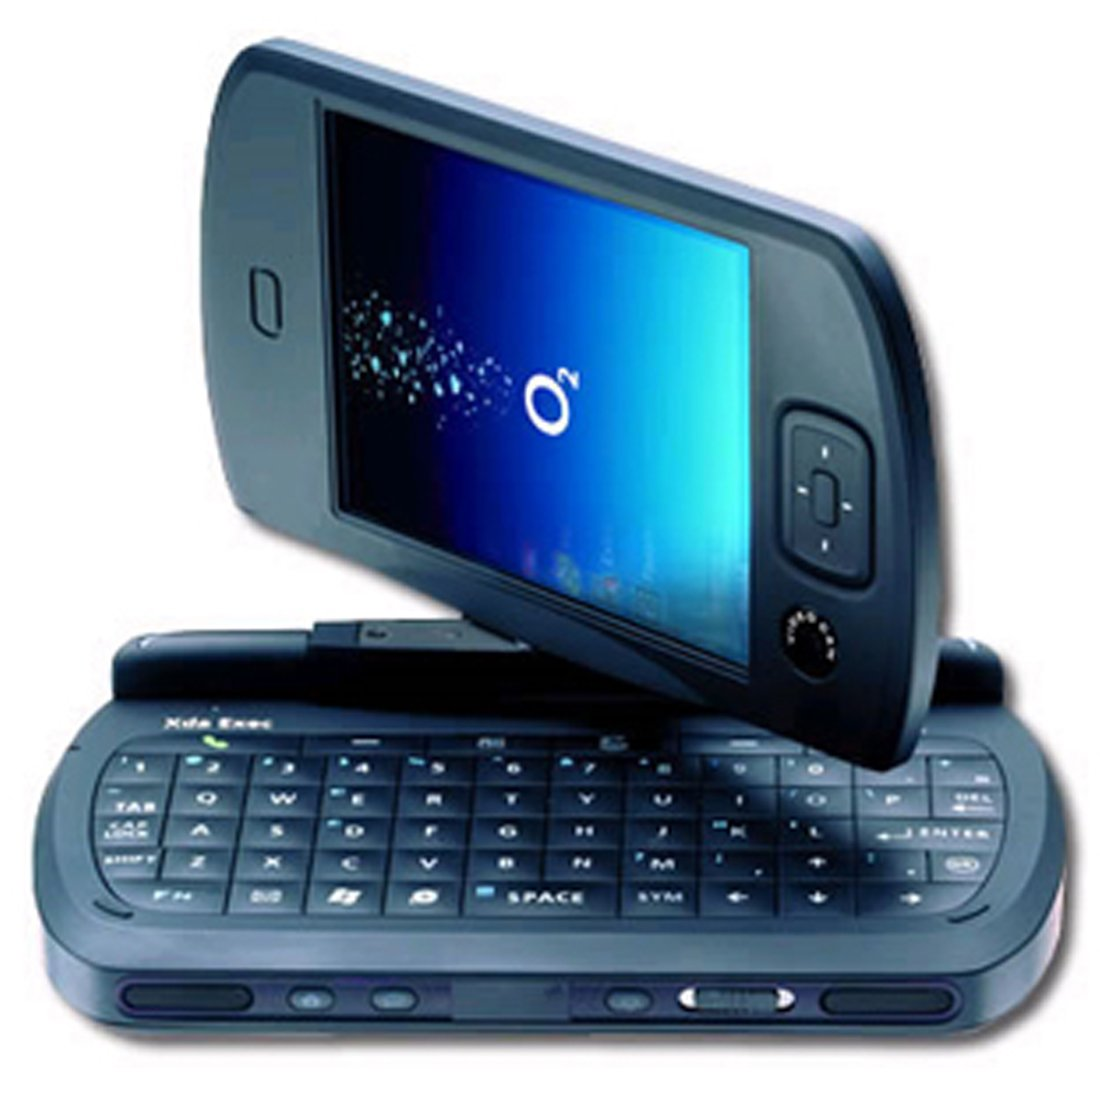 O2 XDA EXEC SIM FREE SMART PHONE-PDA SMART PHONE & MINI LAPTOP